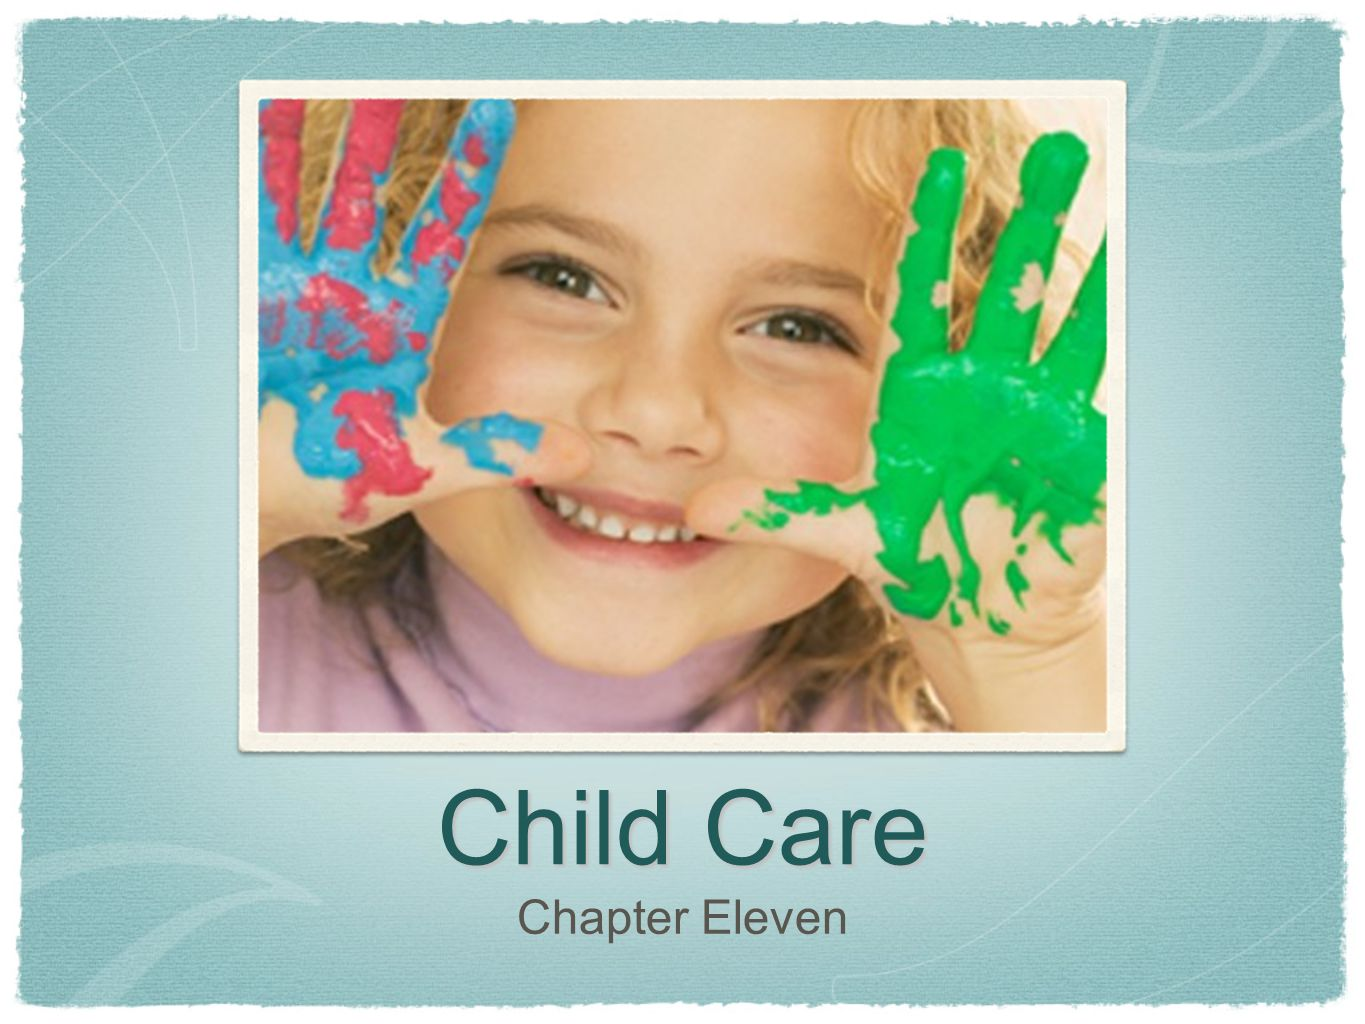 Child Care Chapter Eleven